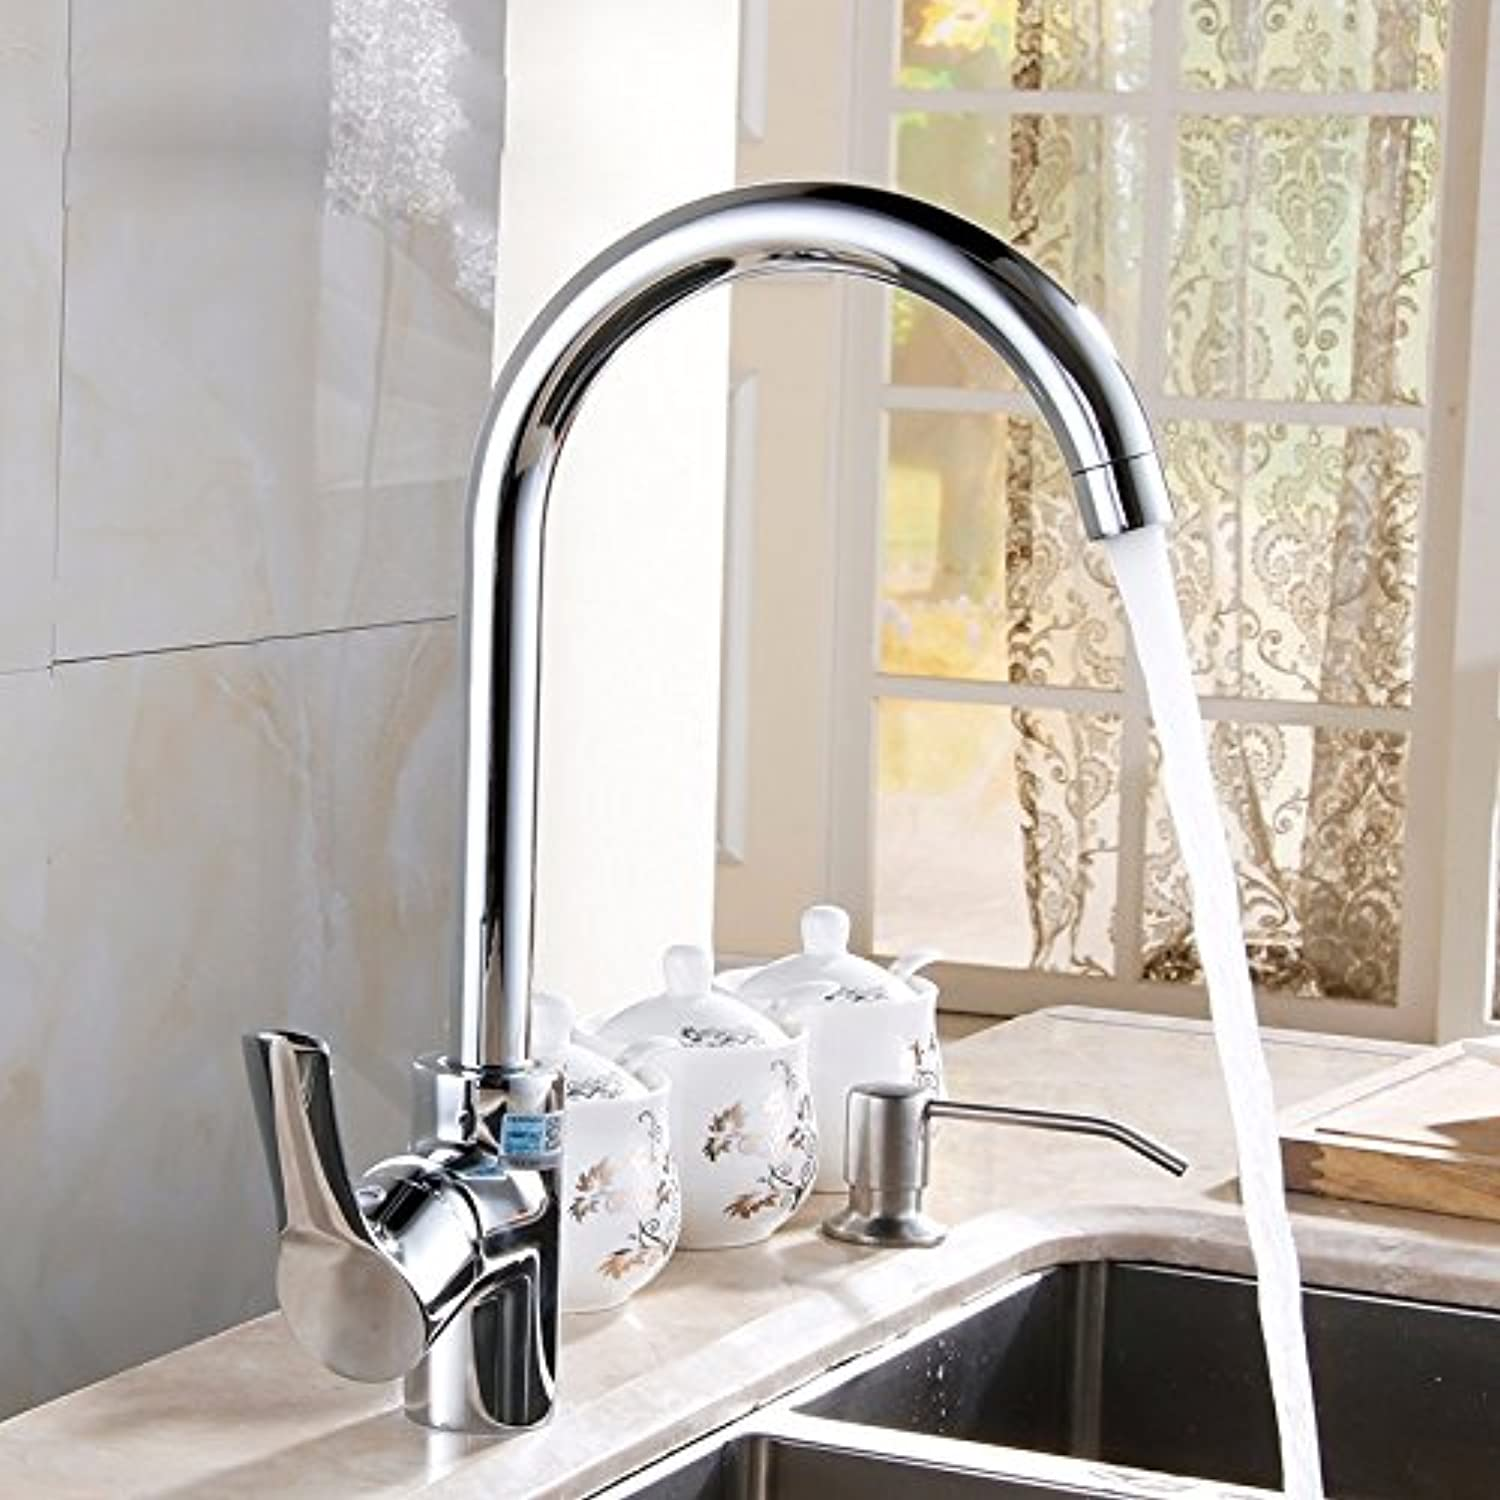 Commercial Single Lever Pull Down Kitchen Sink Faucet Brass Constructed Polished Copper Hot and Cold Sink Faucet, Sink Kitchen Faucet, redating Laundry Pool Faucet, Single Handle Single Hole Faucet